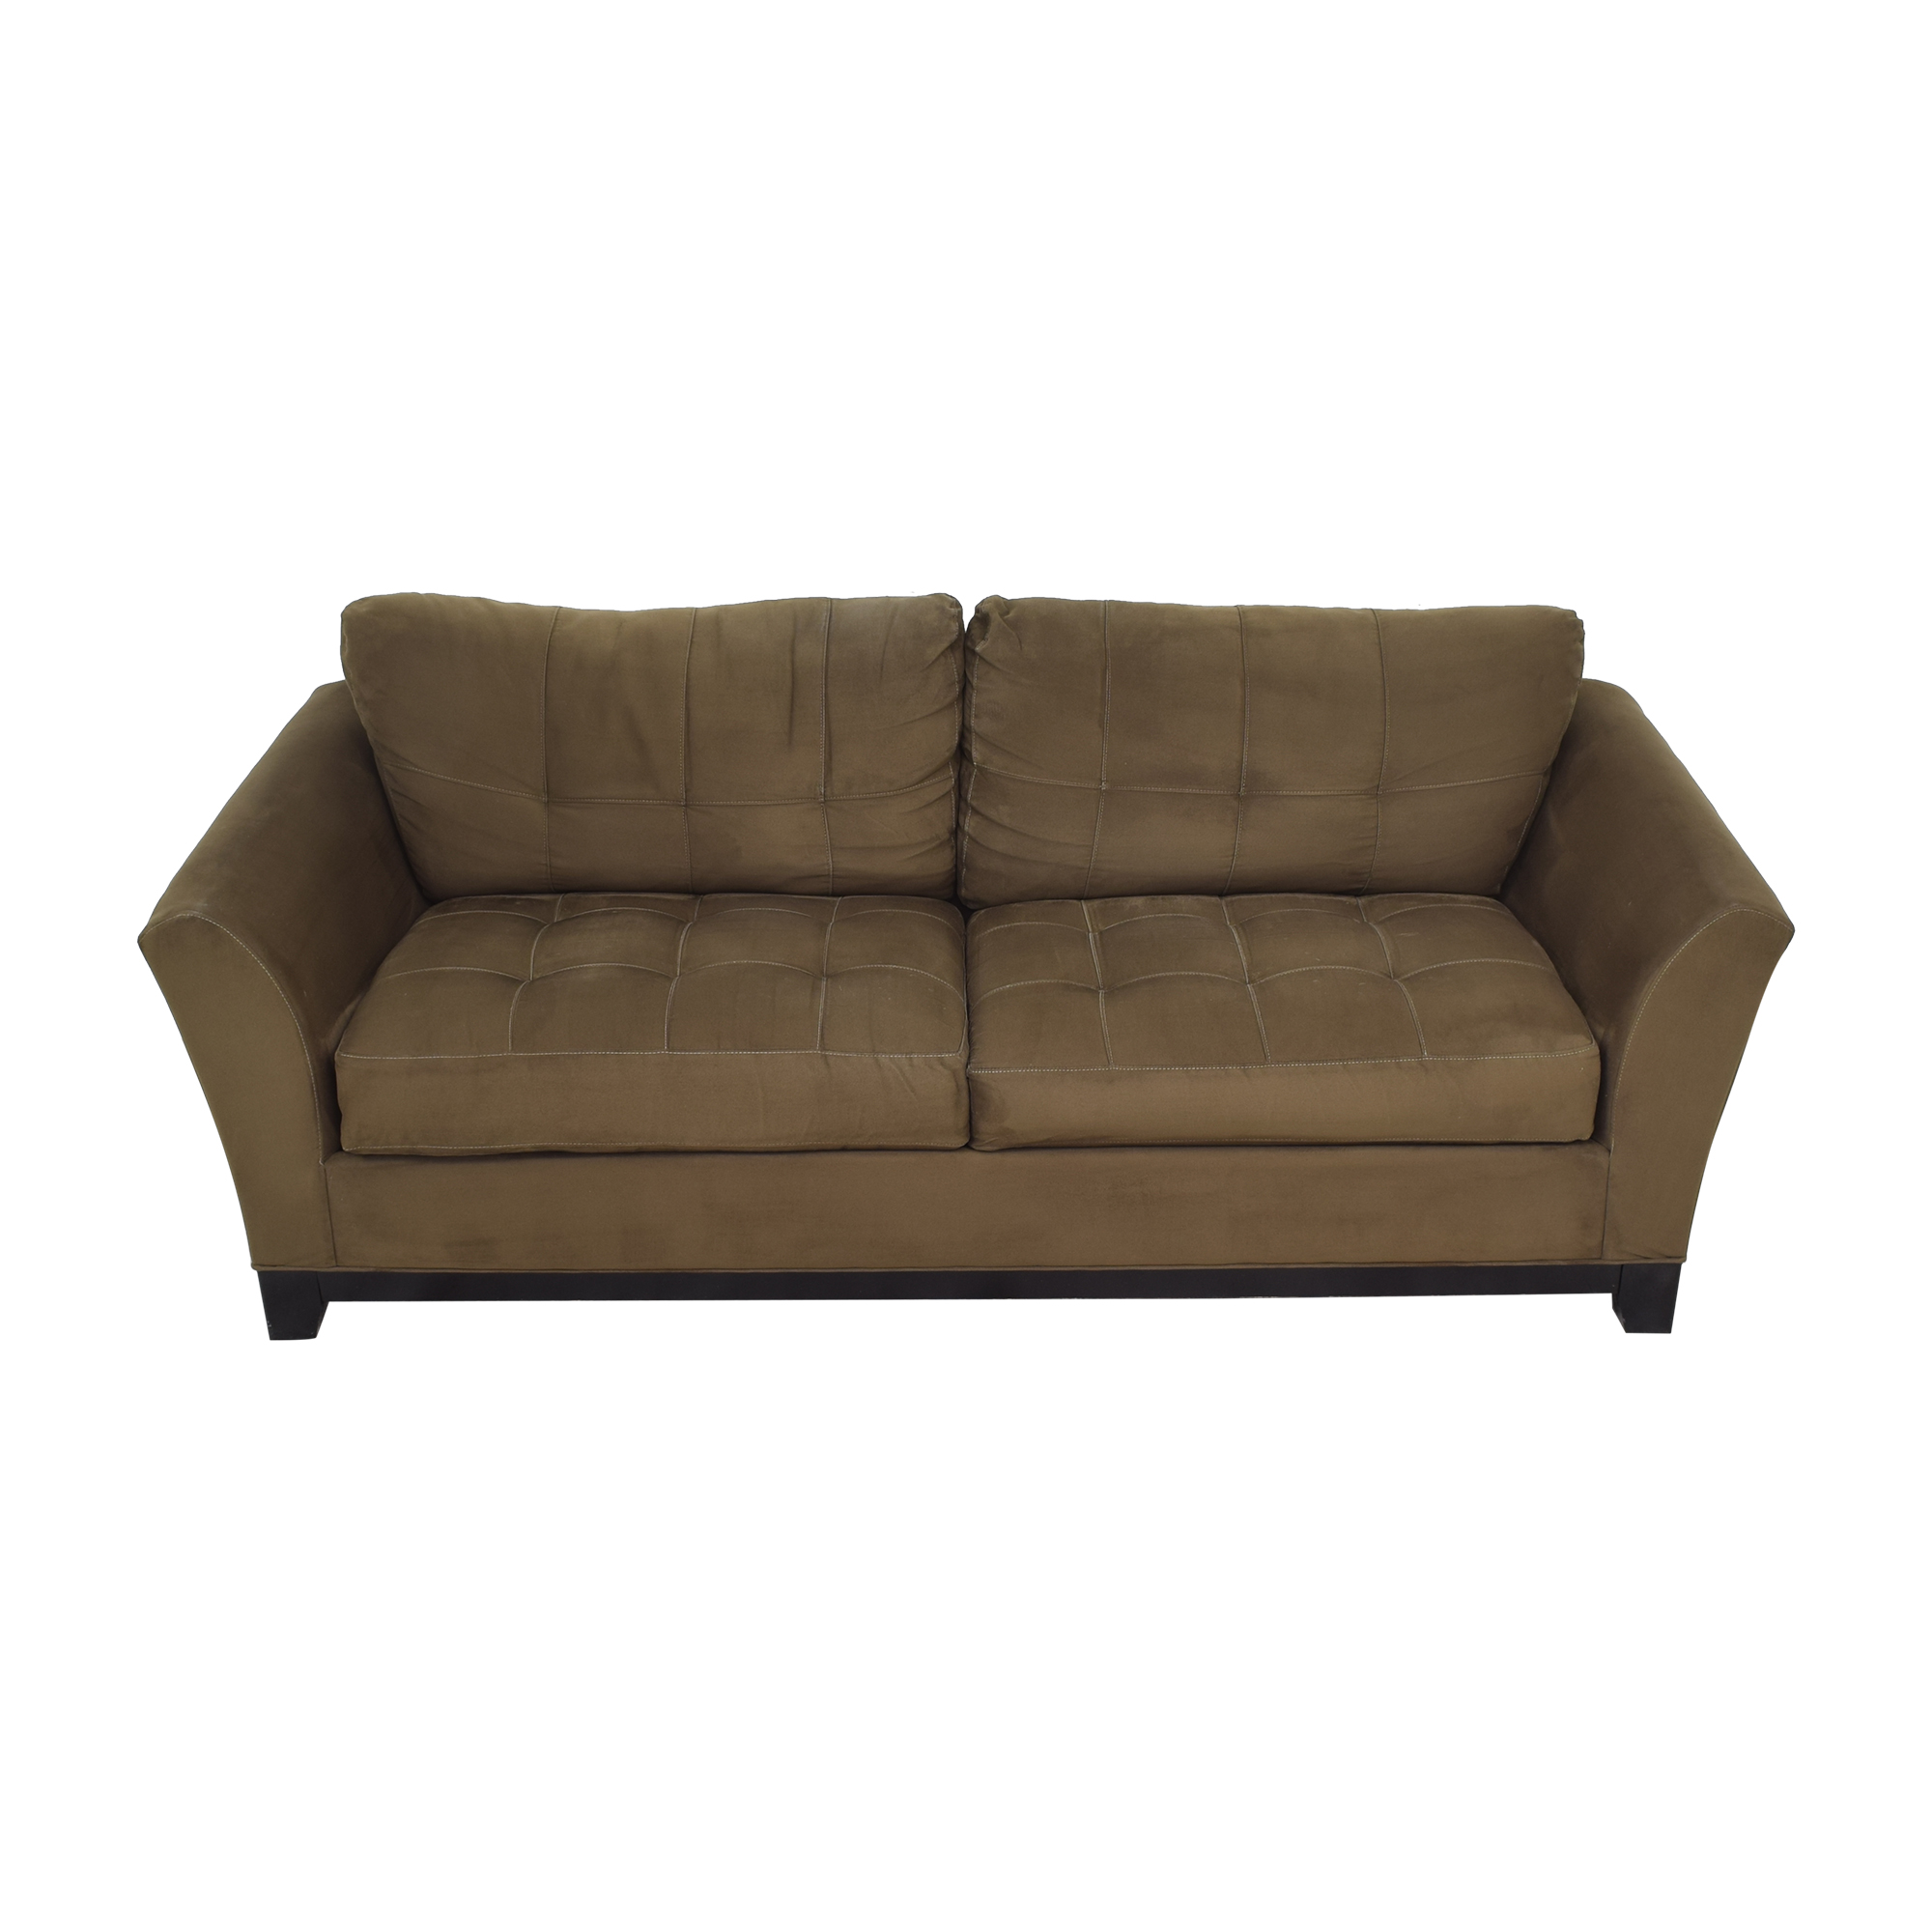 HM Richards Furniture HM Richards Furniture Loveseat with Ottoman